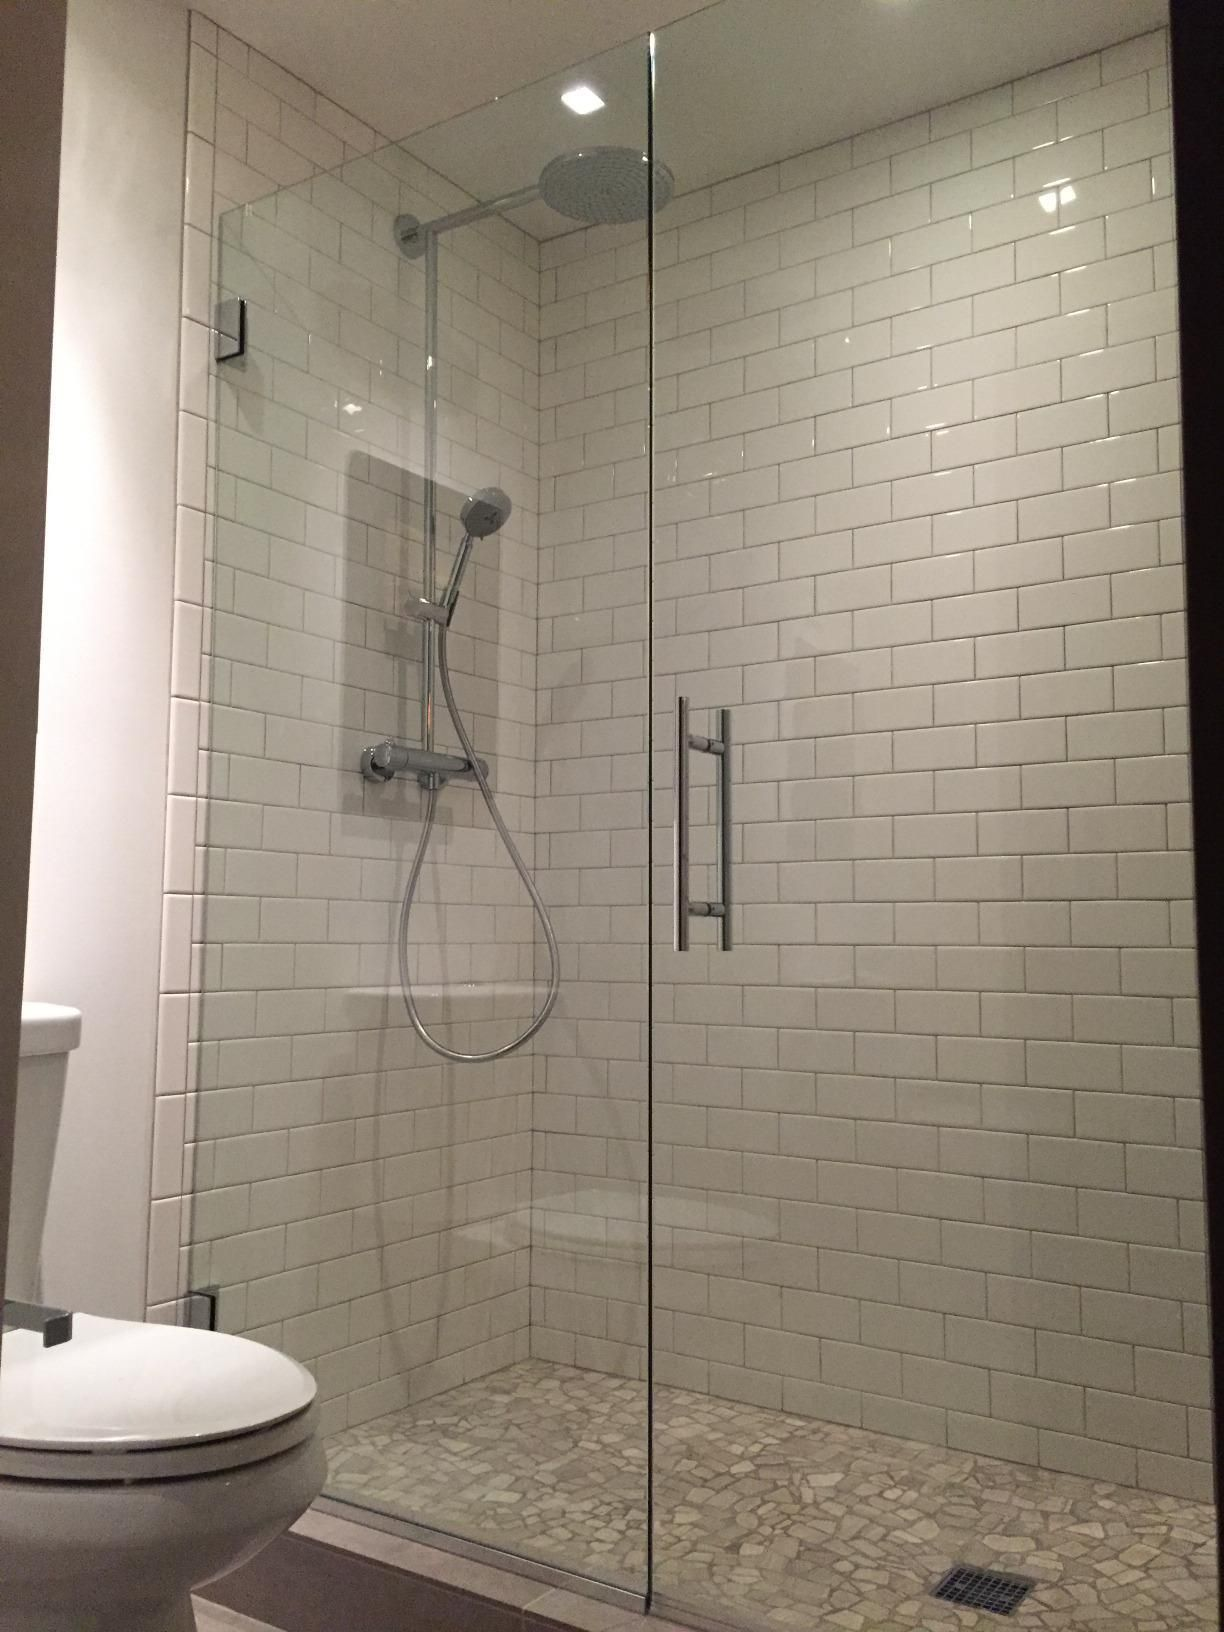 10 Best Shower System Reviews In 2020 Shower Systems Contemporary Bathroom Decor Custom Bathroom